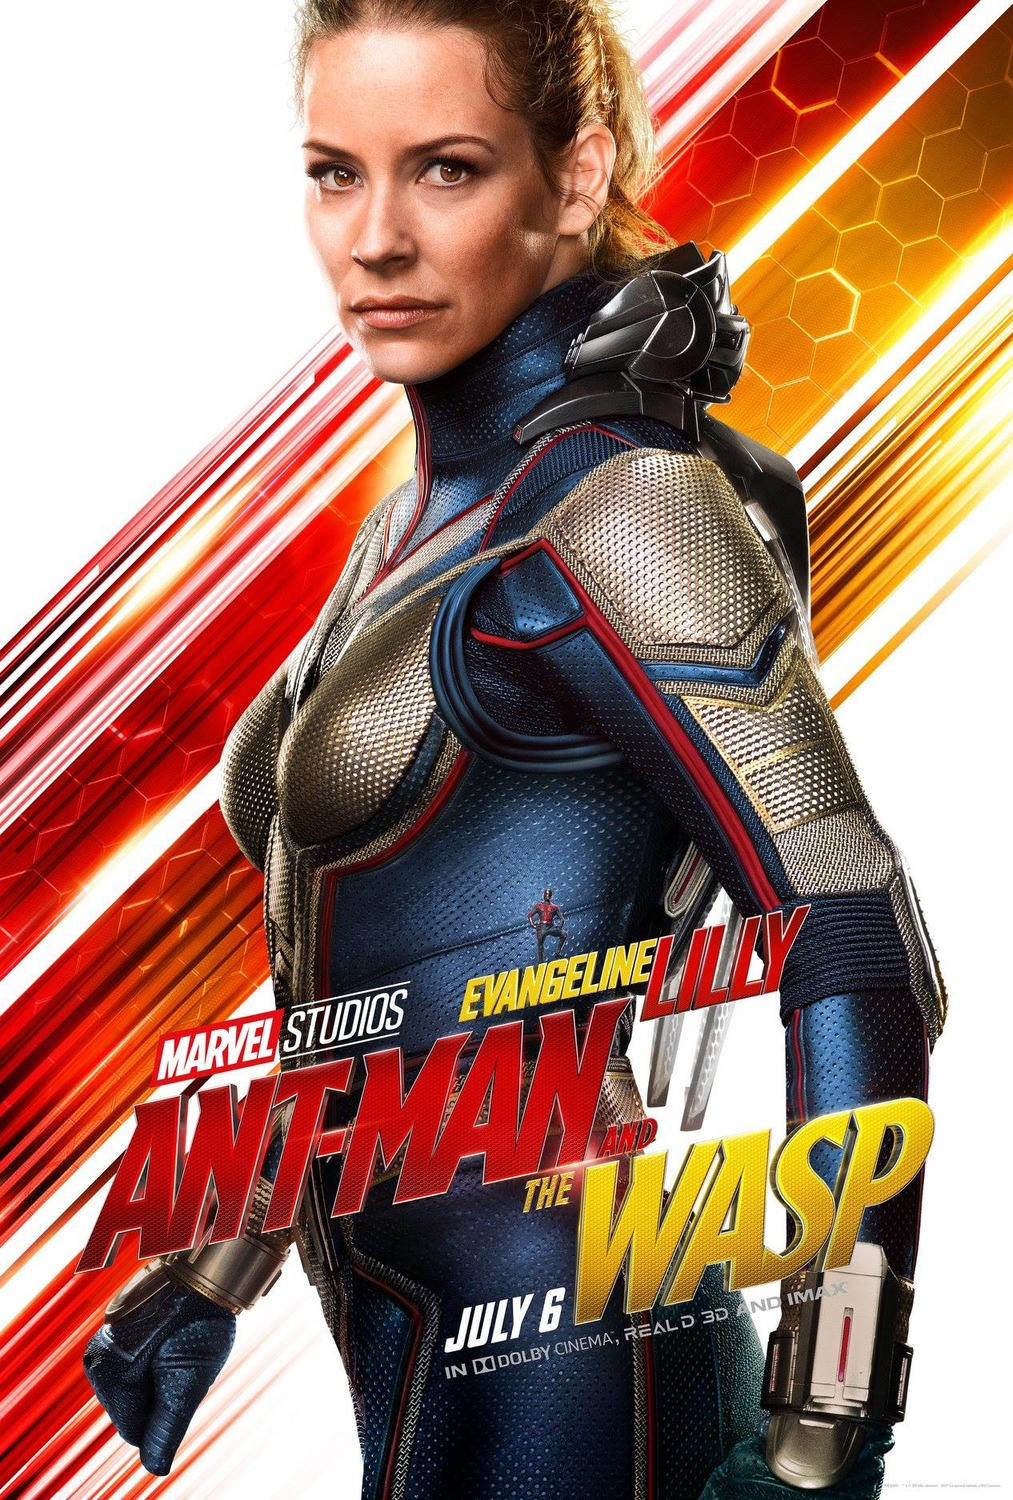 Michelle Pfeiffer Ant Man >> Ant-Man and the Wasp Movie Character Posters : Teaser Trailer